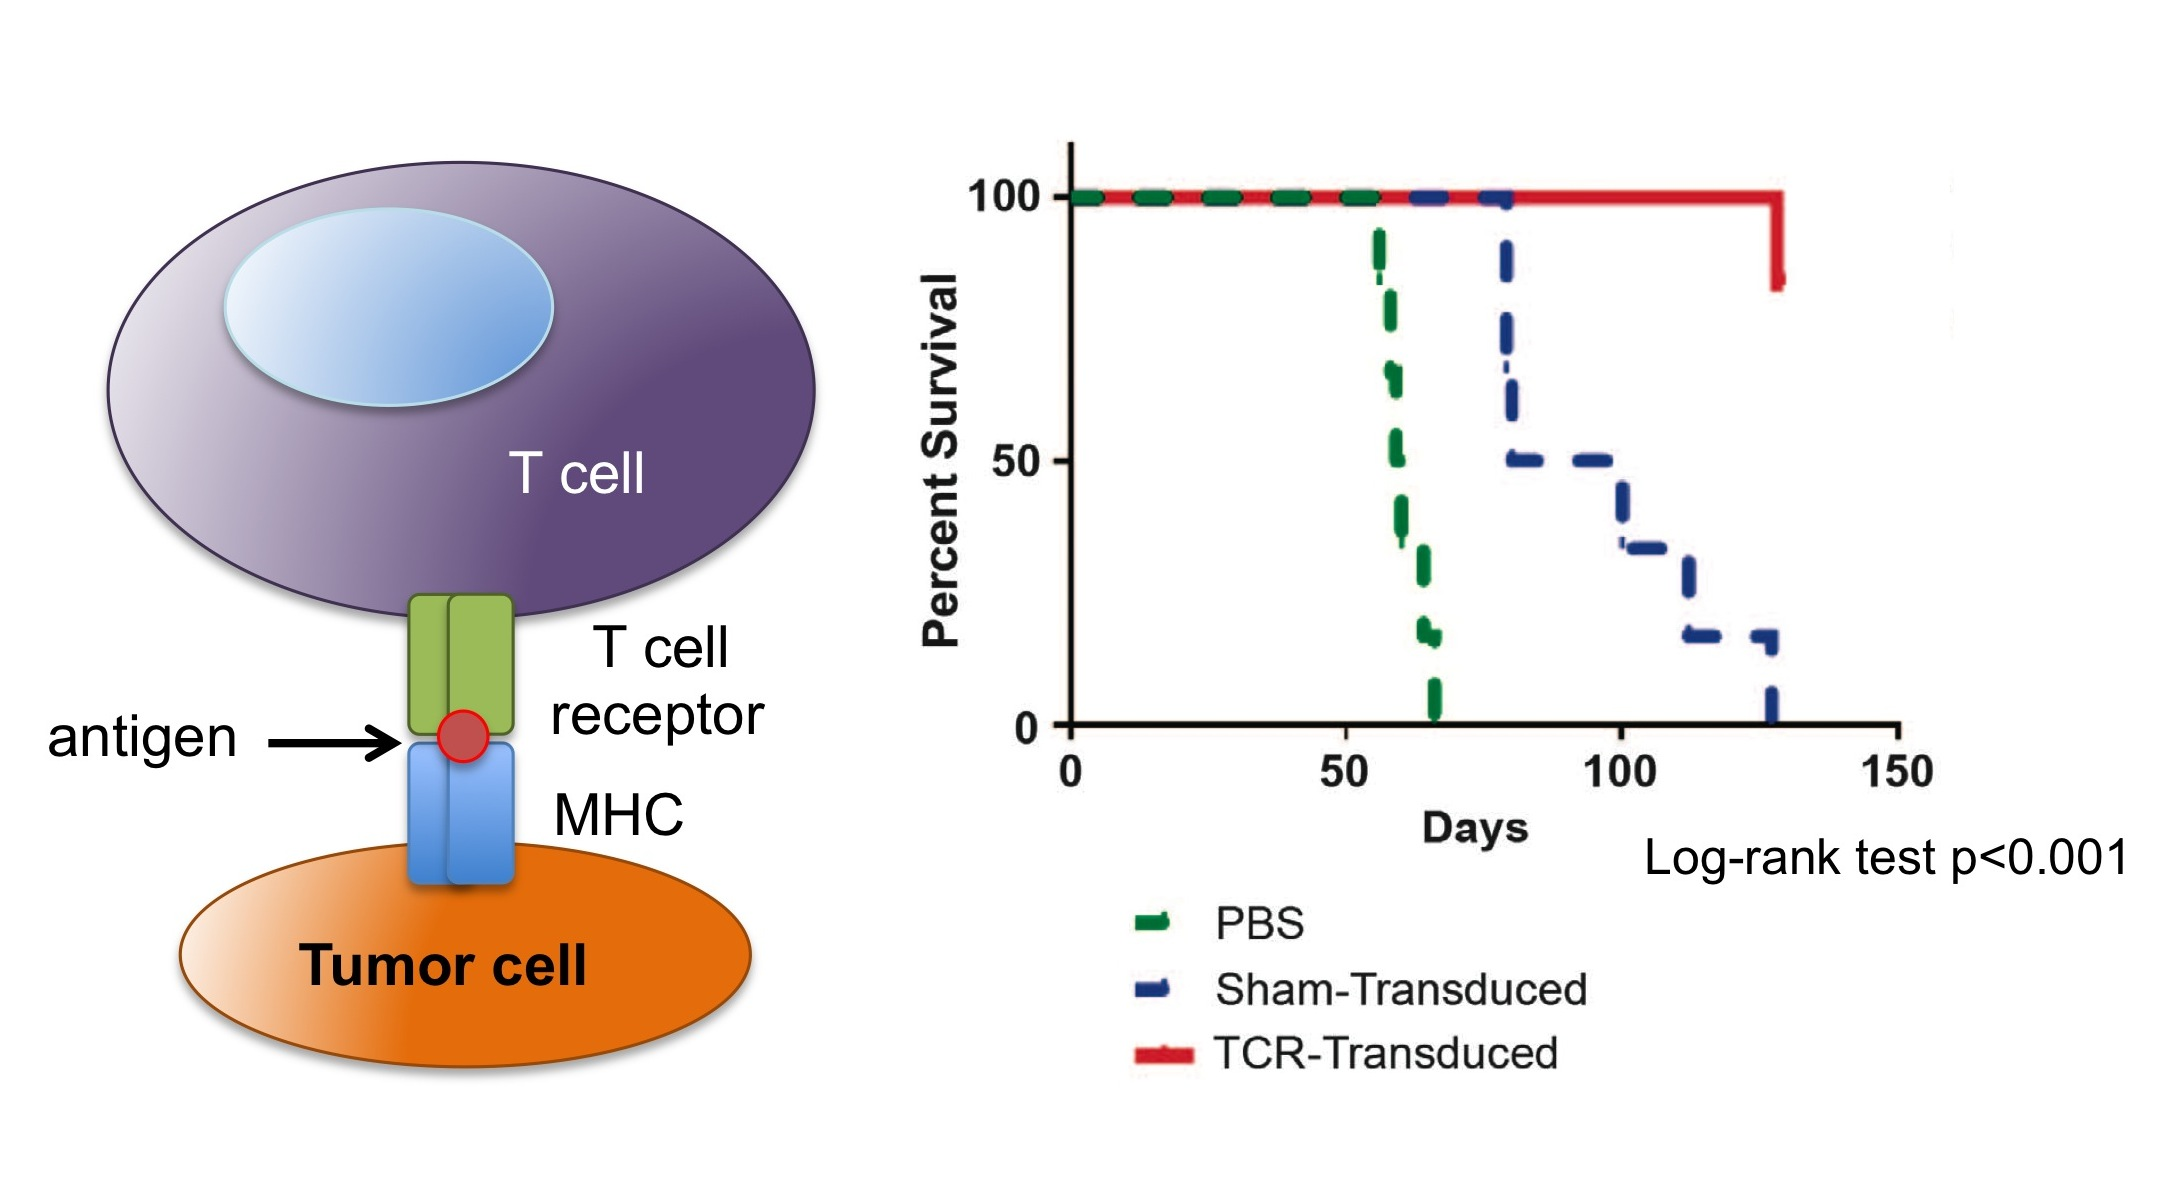 Evasion Of Adoptive T Cell Therapy Through Loss Of Mhc